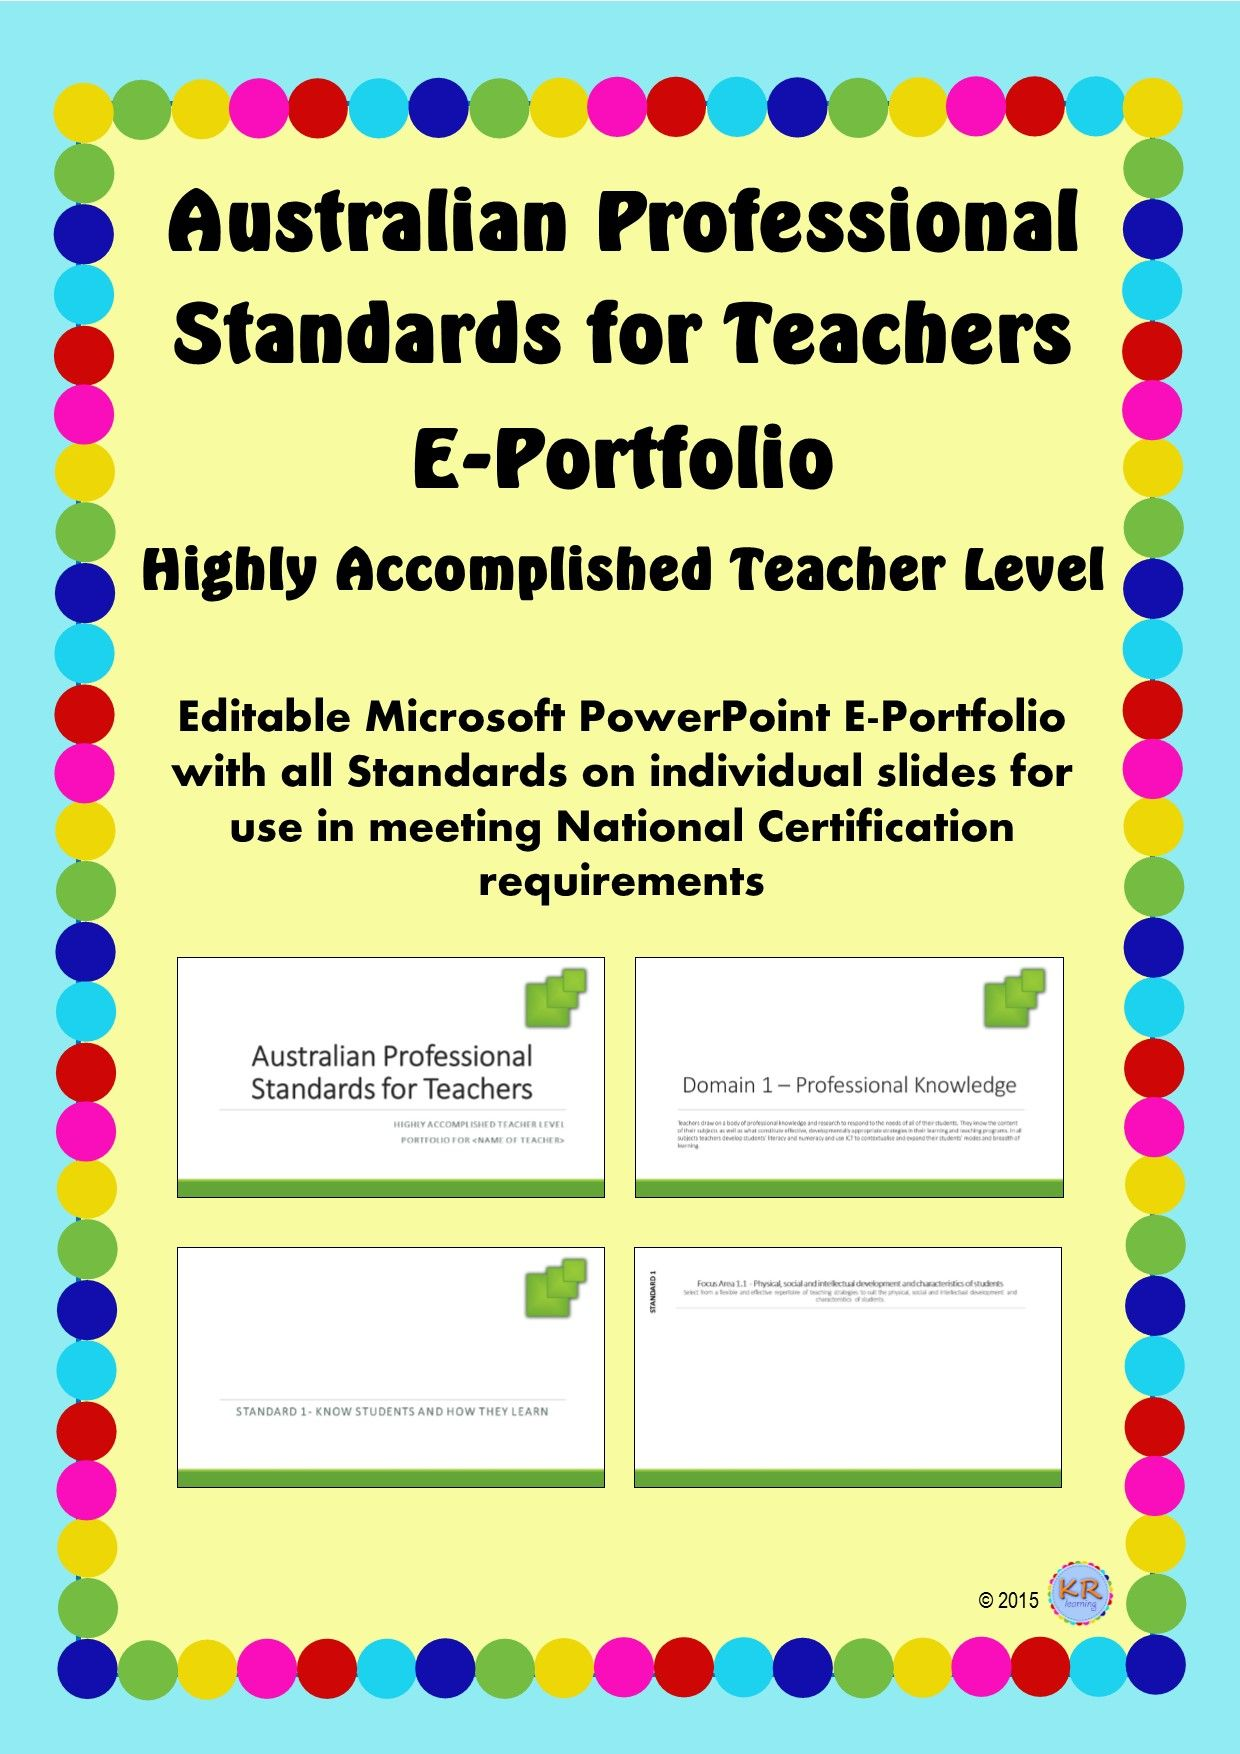 highly accomplished teacher level australian professional standards for teachers e portfolio